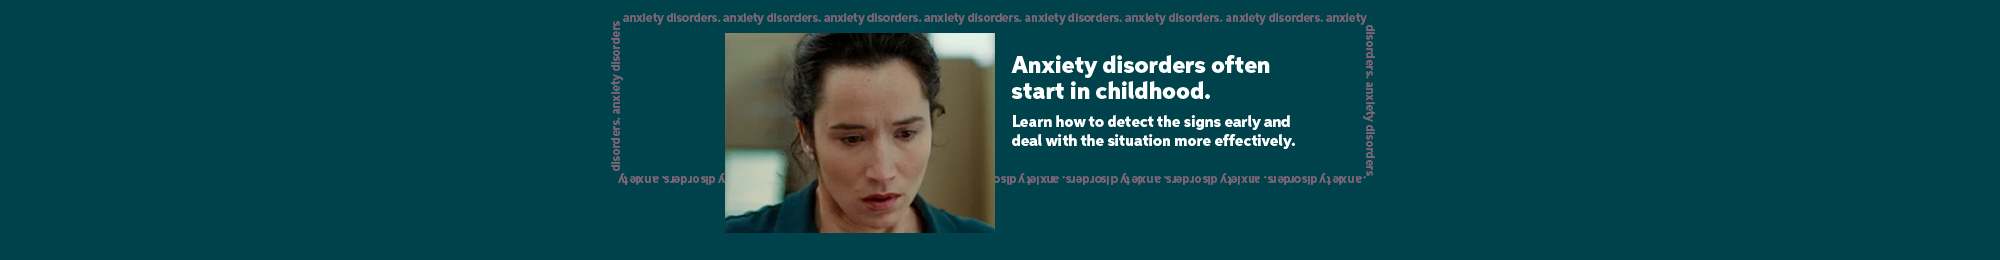 Anxiety disorders often start in childhood. Learn how to detect the signs early and deal with the situation more effectively.